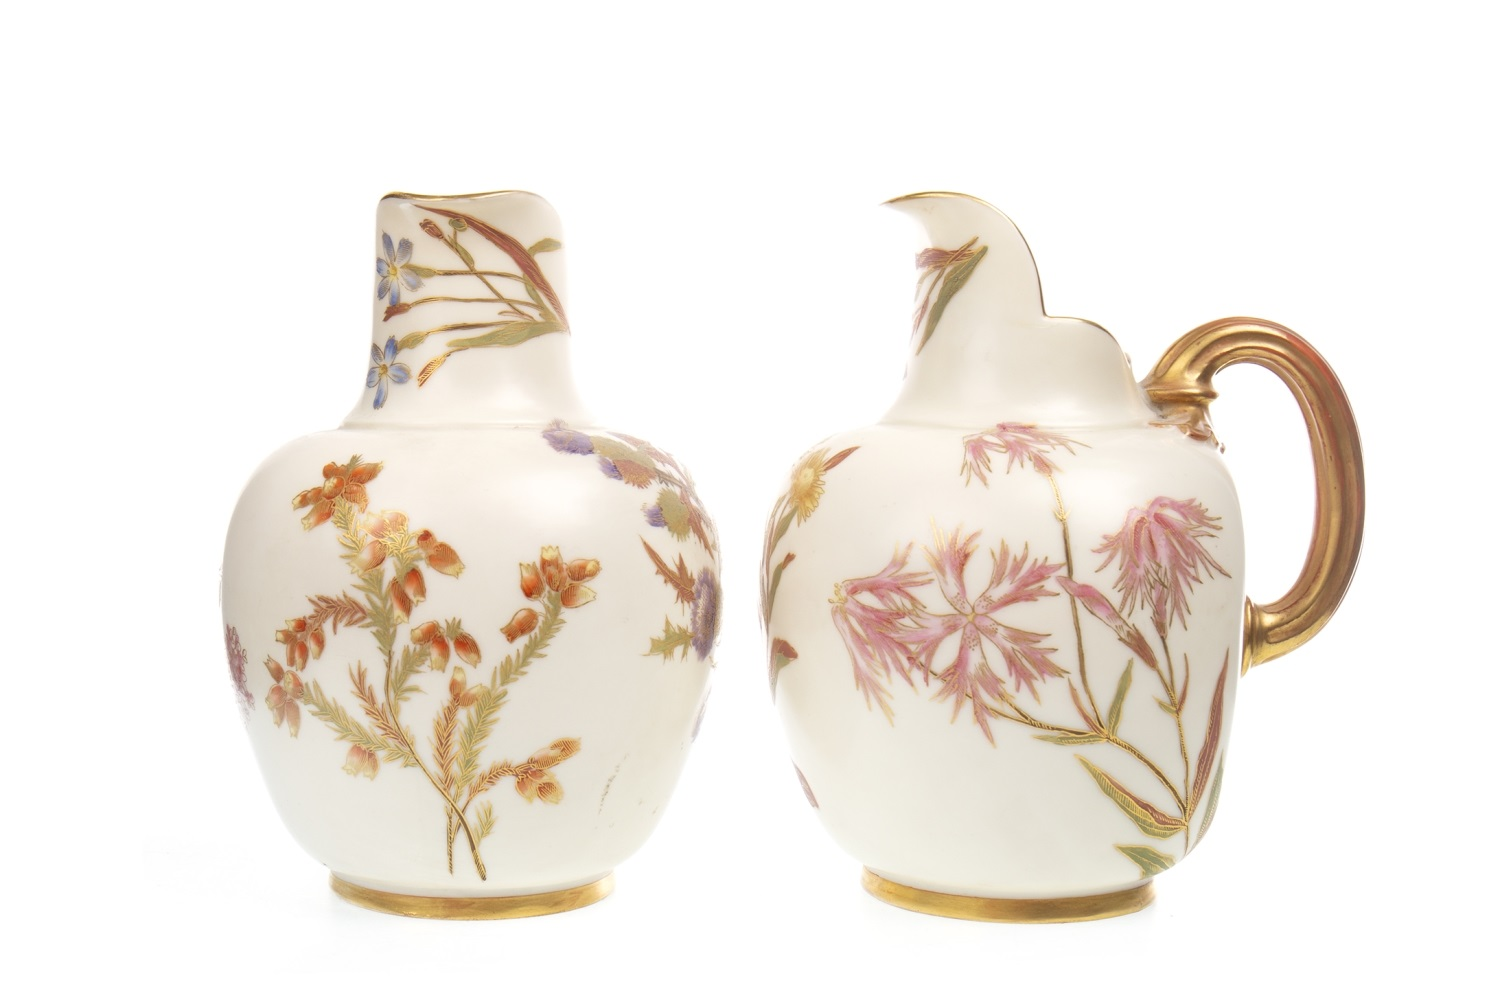 Lot 1280 - A PAIR OF ROYAL WORCESTER JUGS